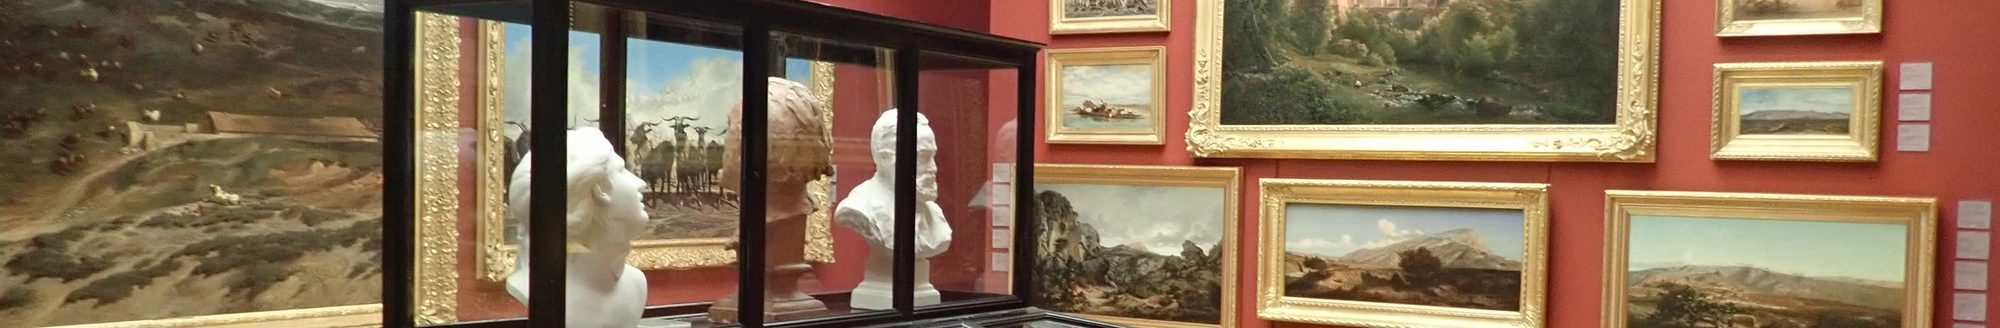 Museo Granet